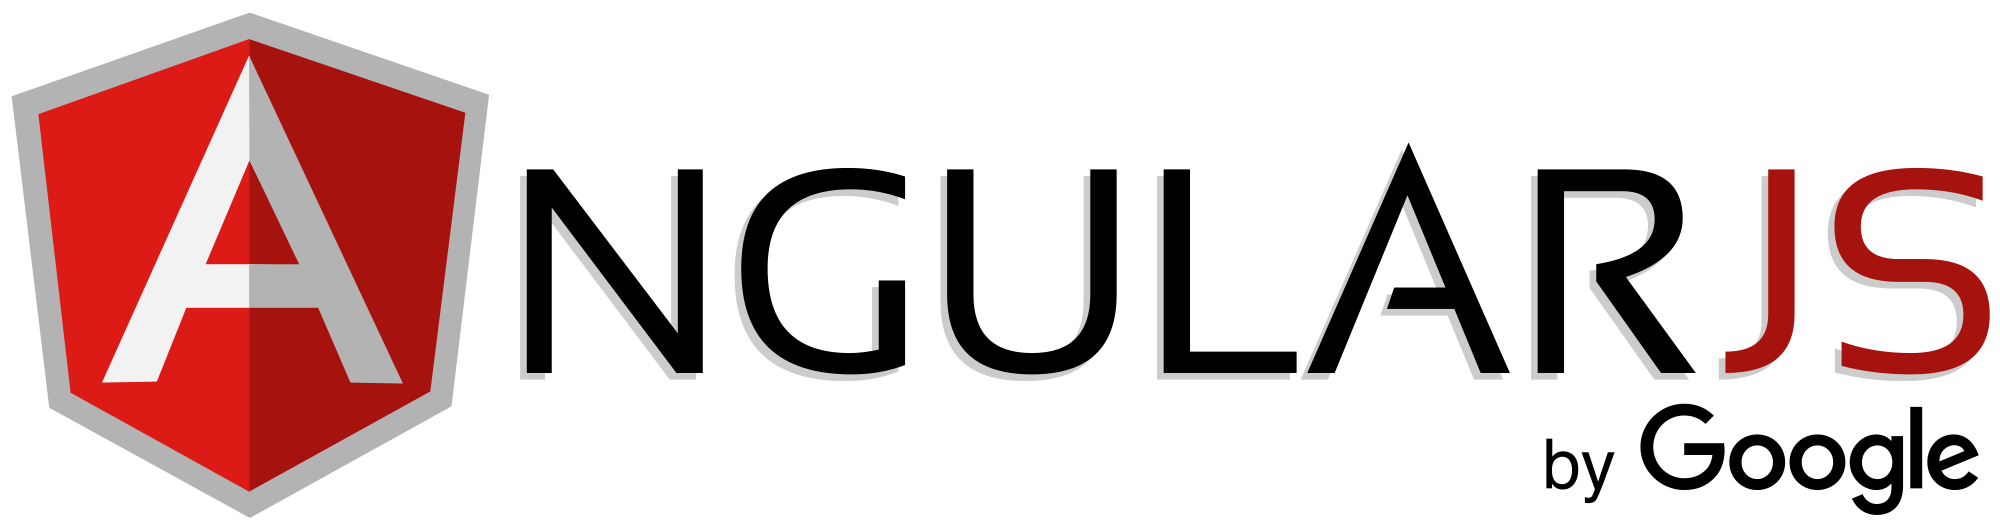 handling angularjs routing with angular-route (ngroute)